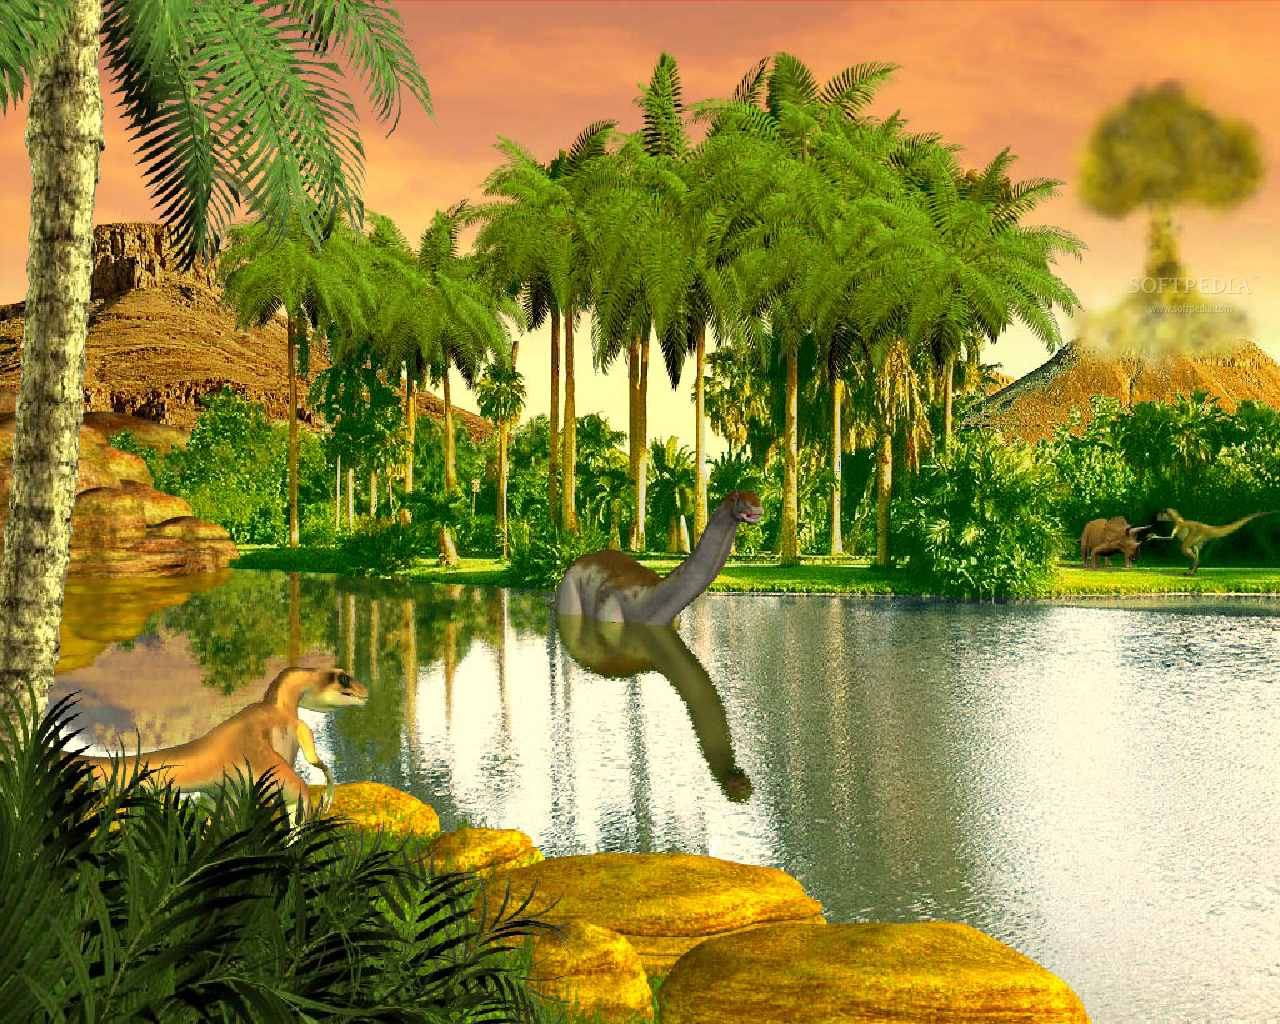 Dinosaur Valley   Animated Wallpaper   This is the image that will be 1280x1024